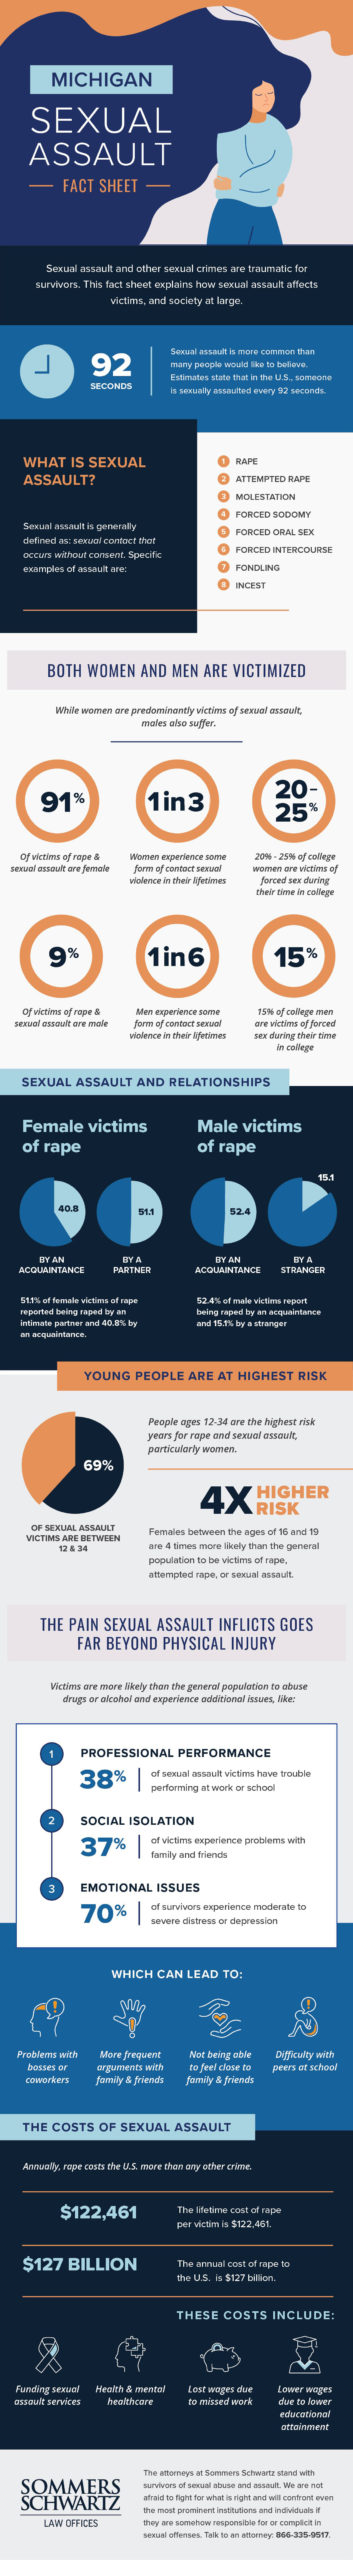 SS SexualAssault infographic scaled